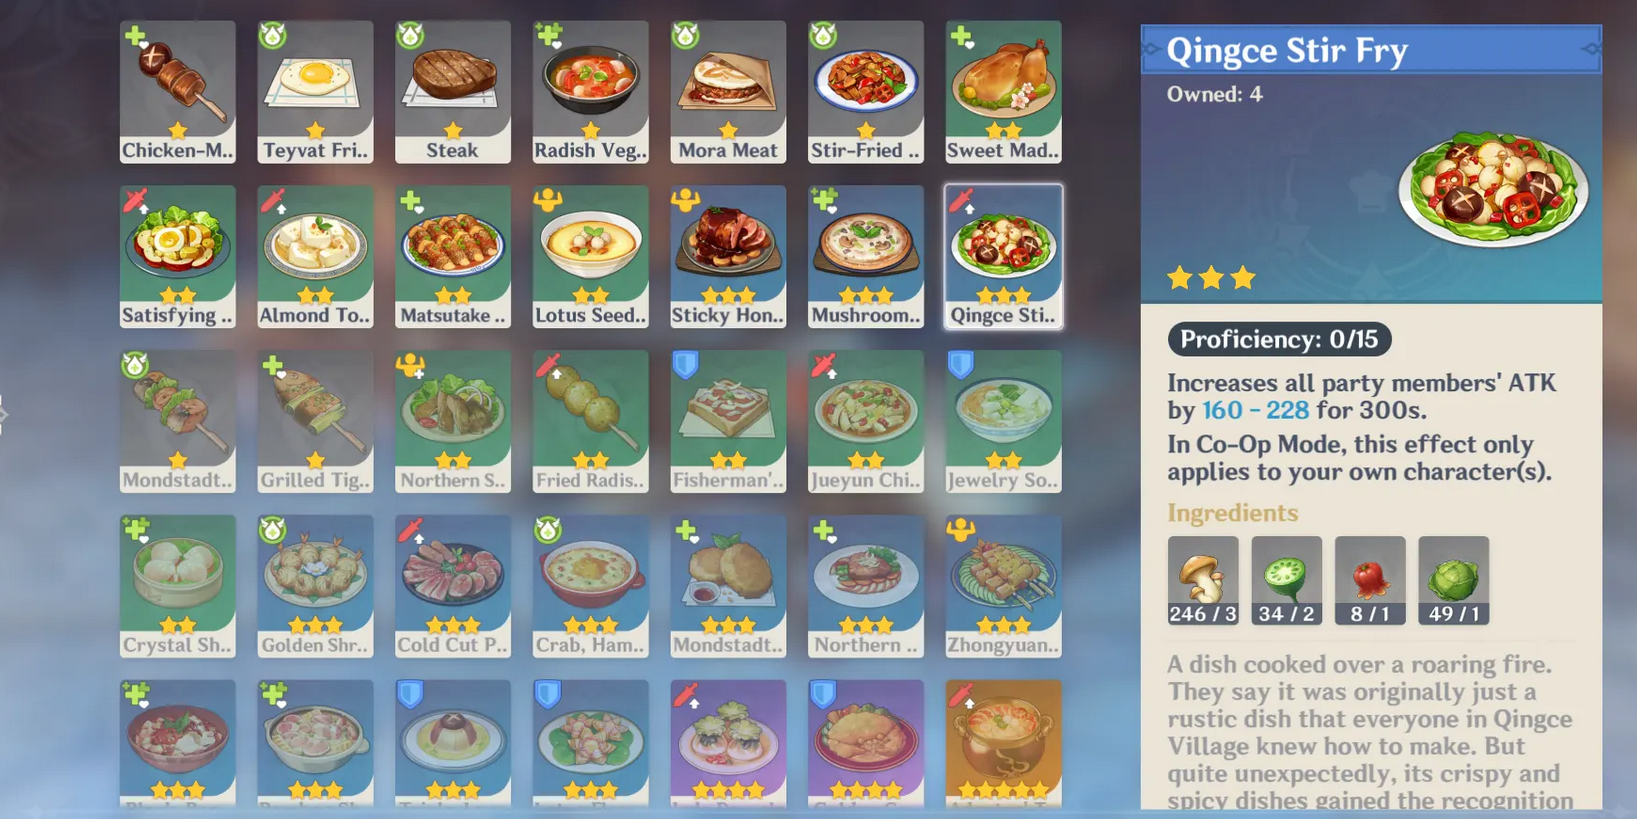 An image of the Qingce Stir Fry entry in the list of recipes available in Genshin Impact.